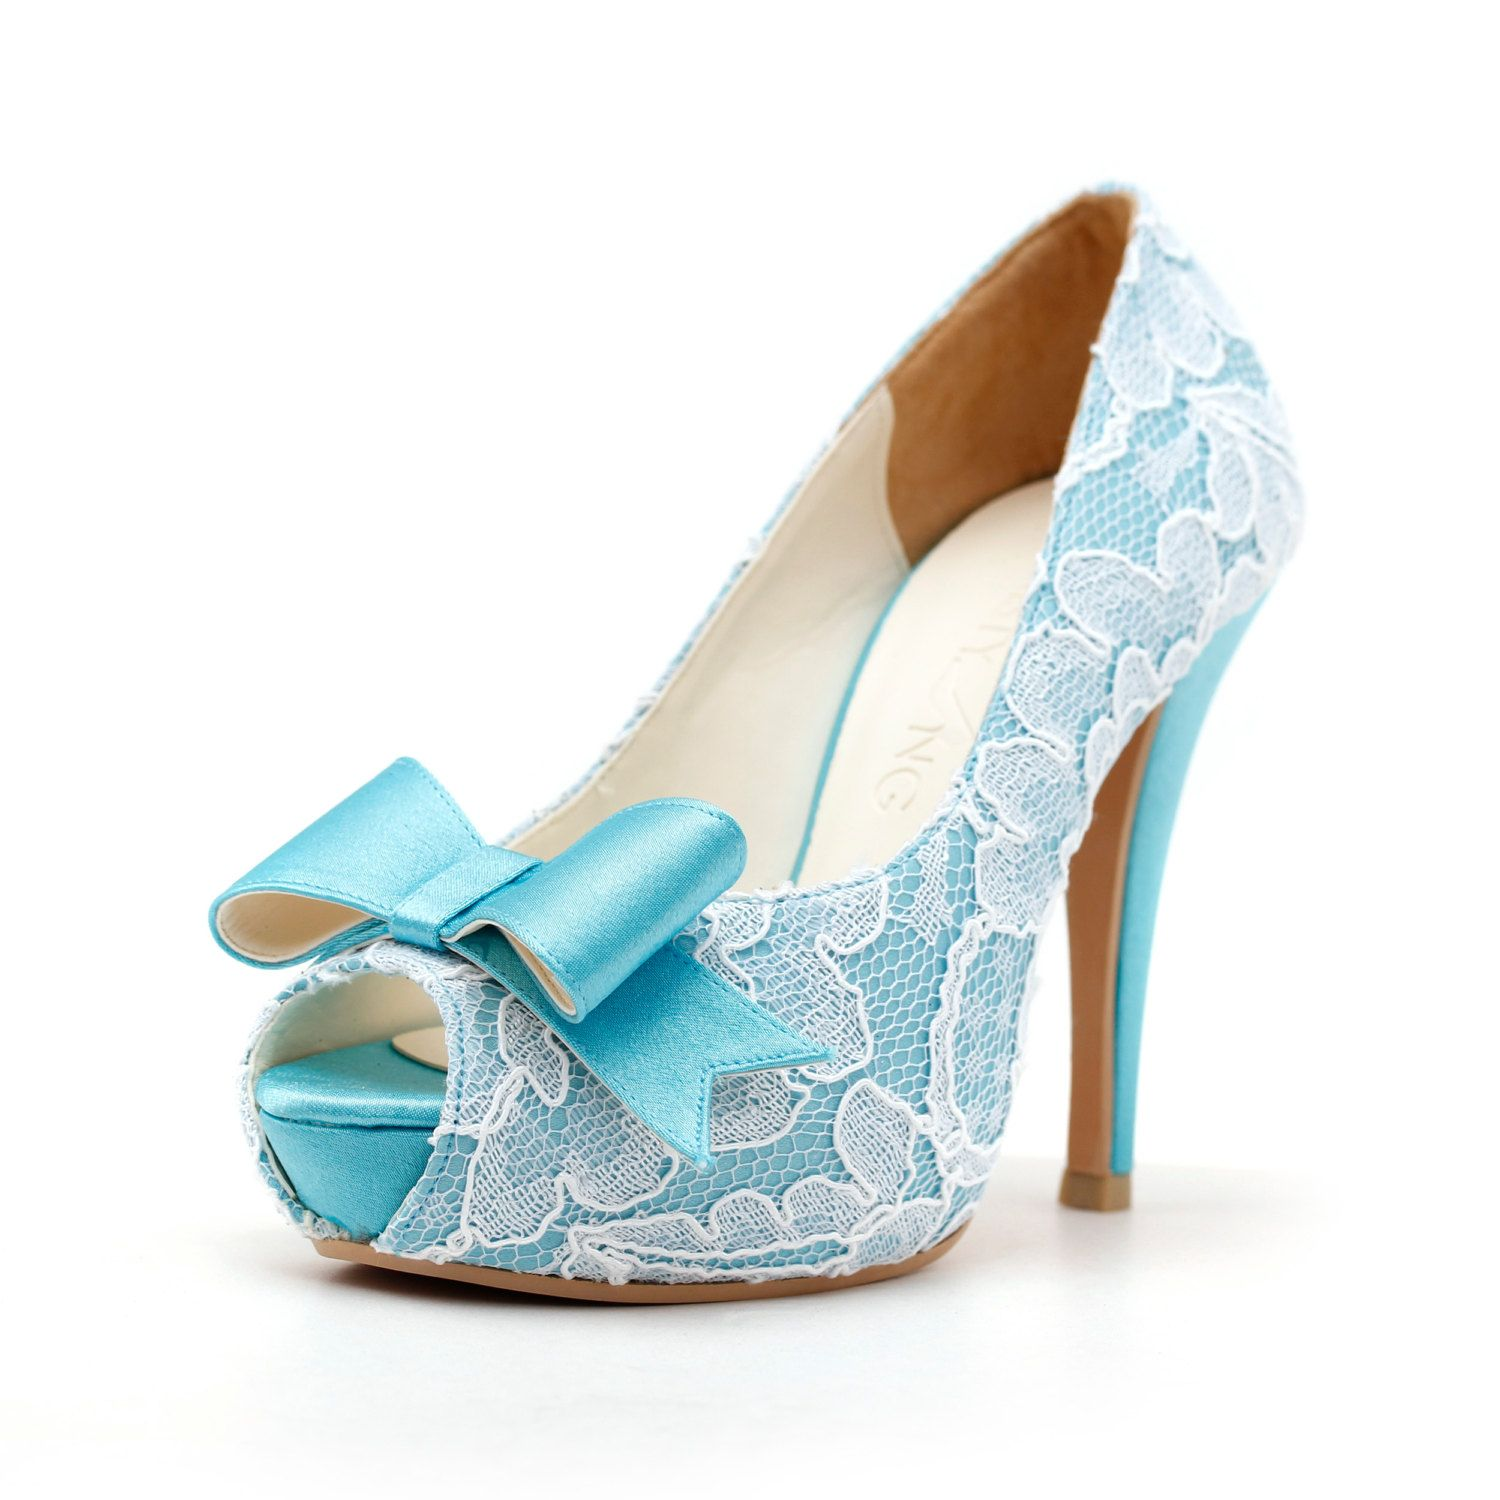 823316dd53e20 Custom Made Wedding Heels, Sky Blue Lace Wedding Heels with Front ...